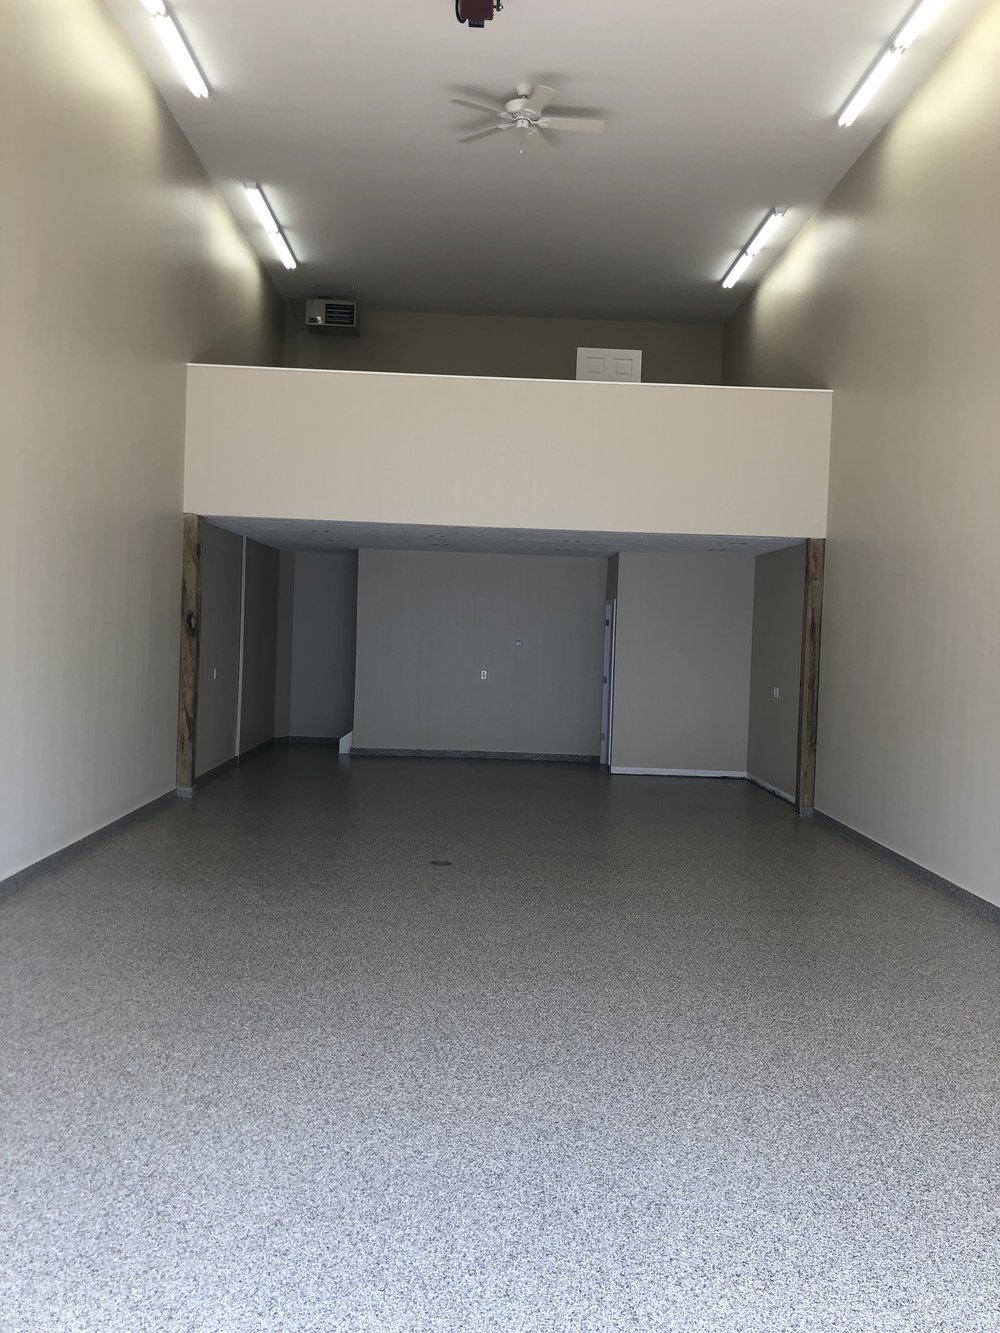 Optional features - Epoxy floors and lofts